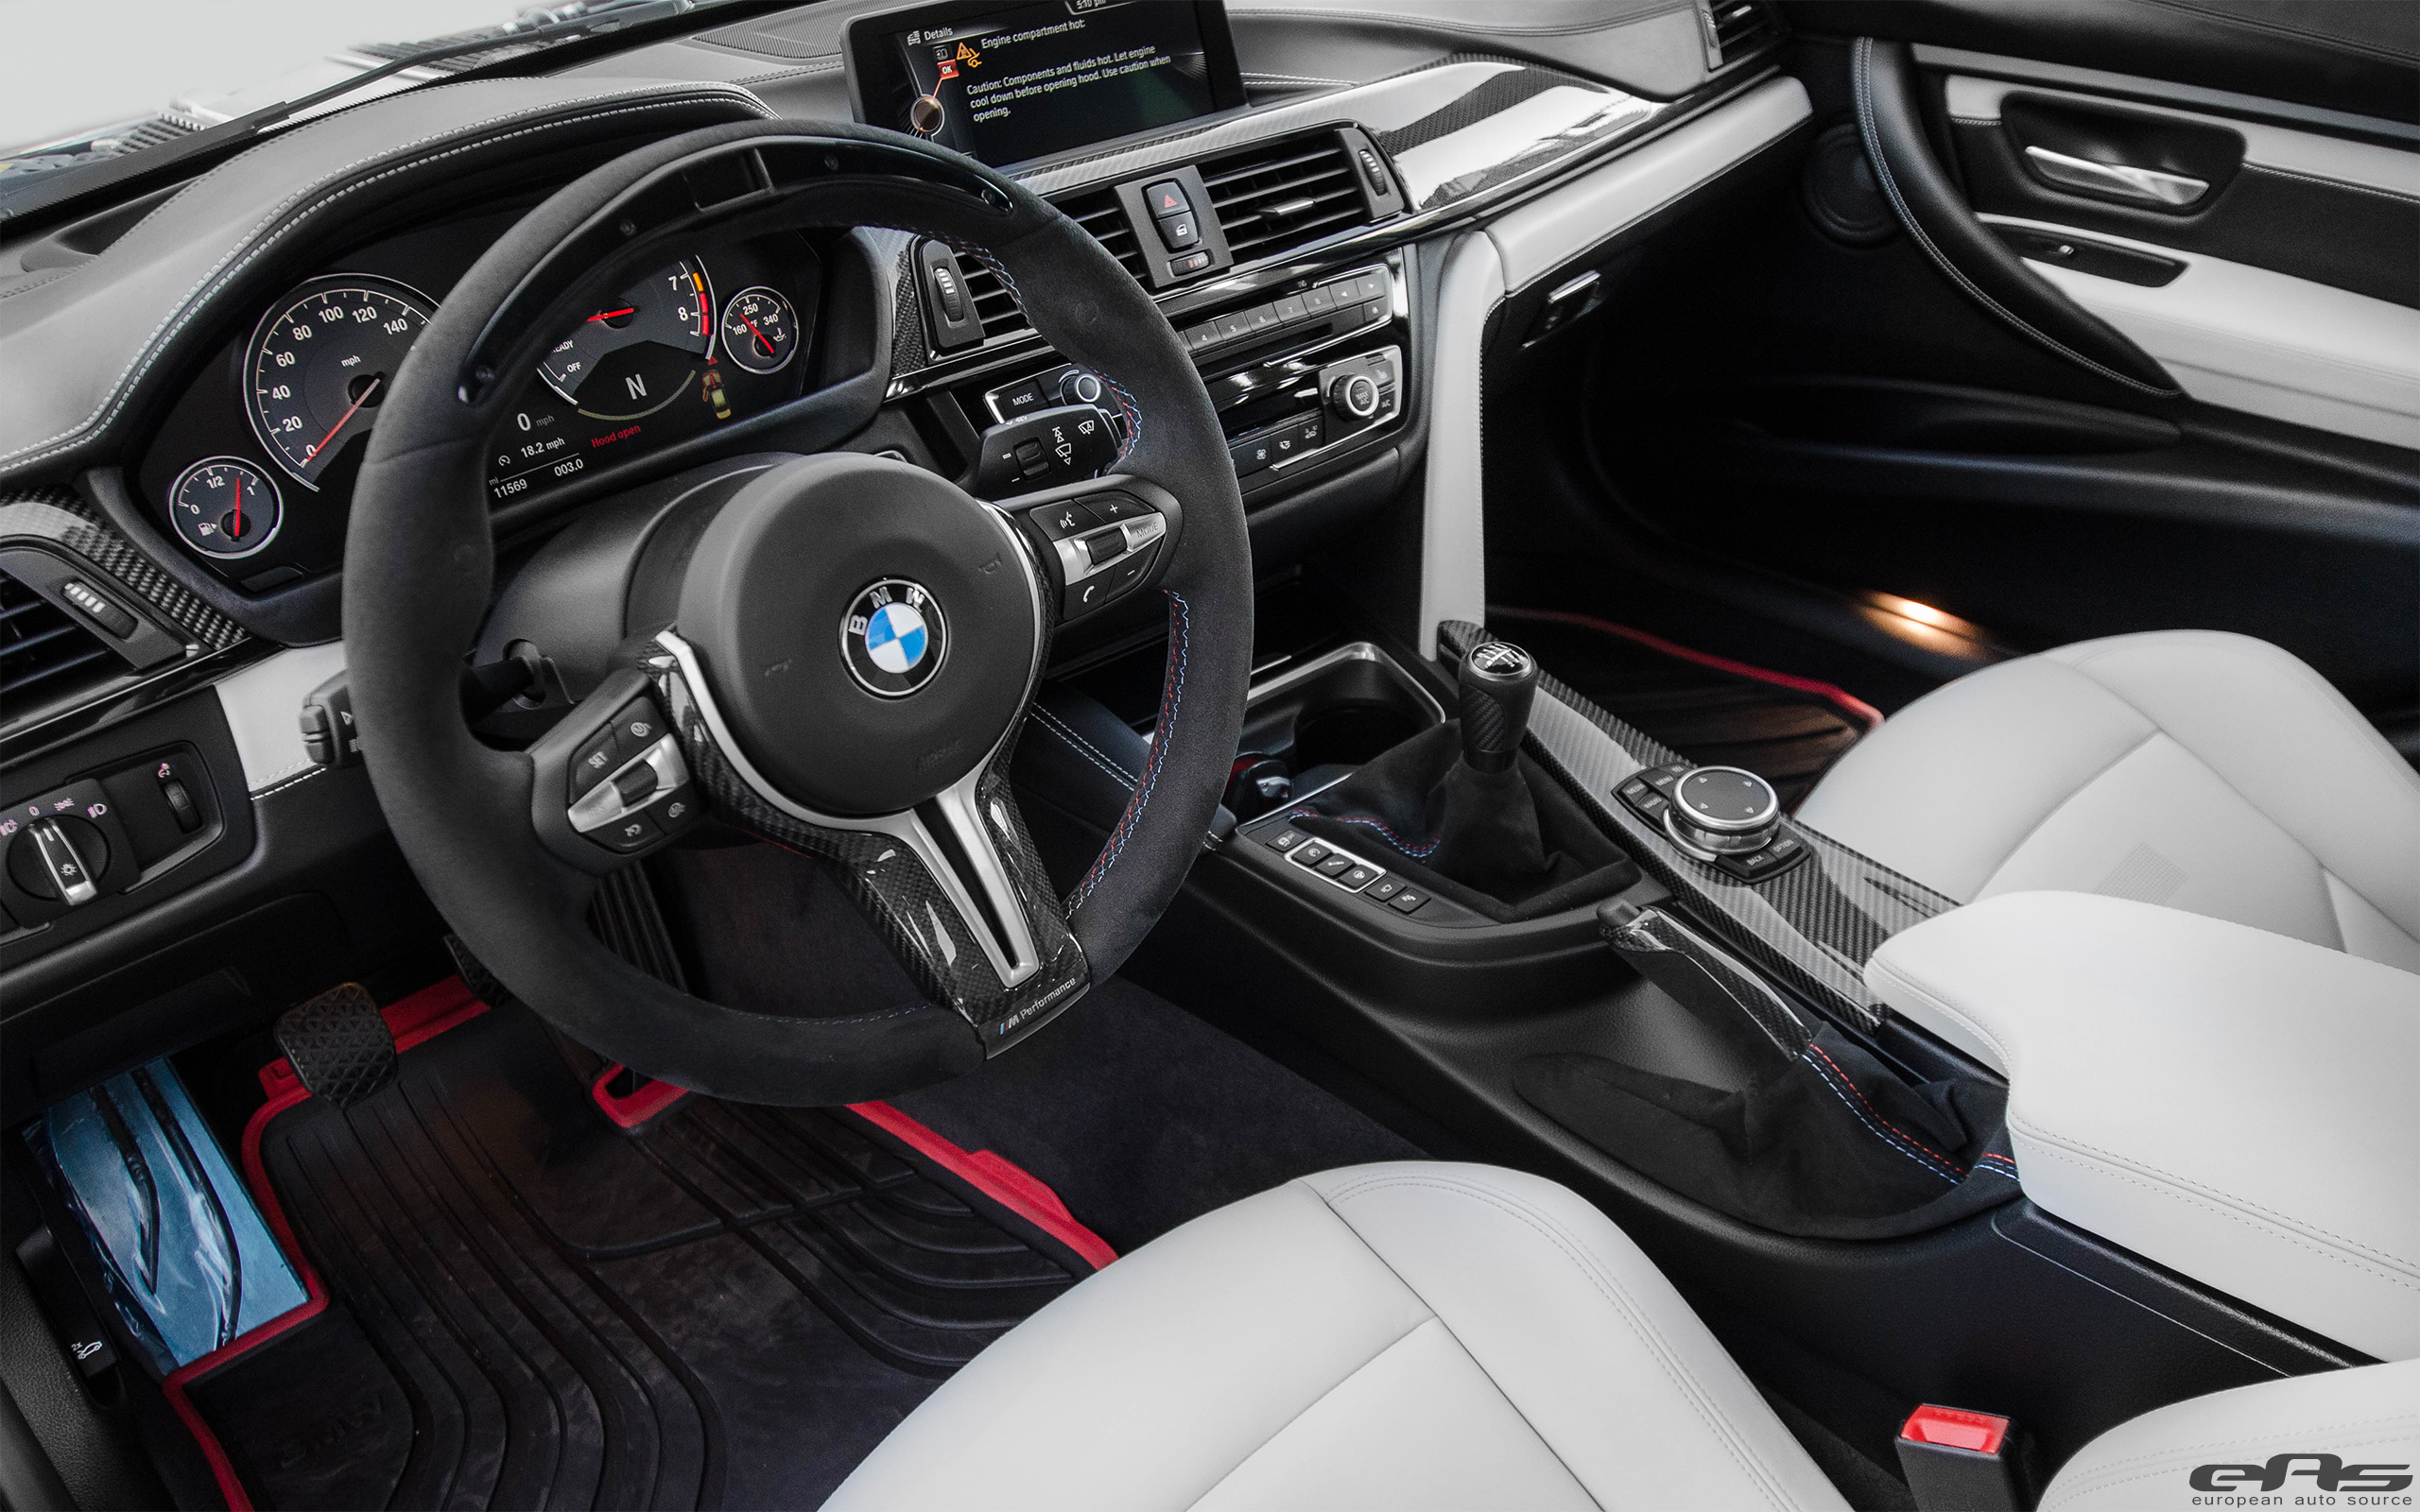 The Return Of Imola Red In A Bmw F80 M3